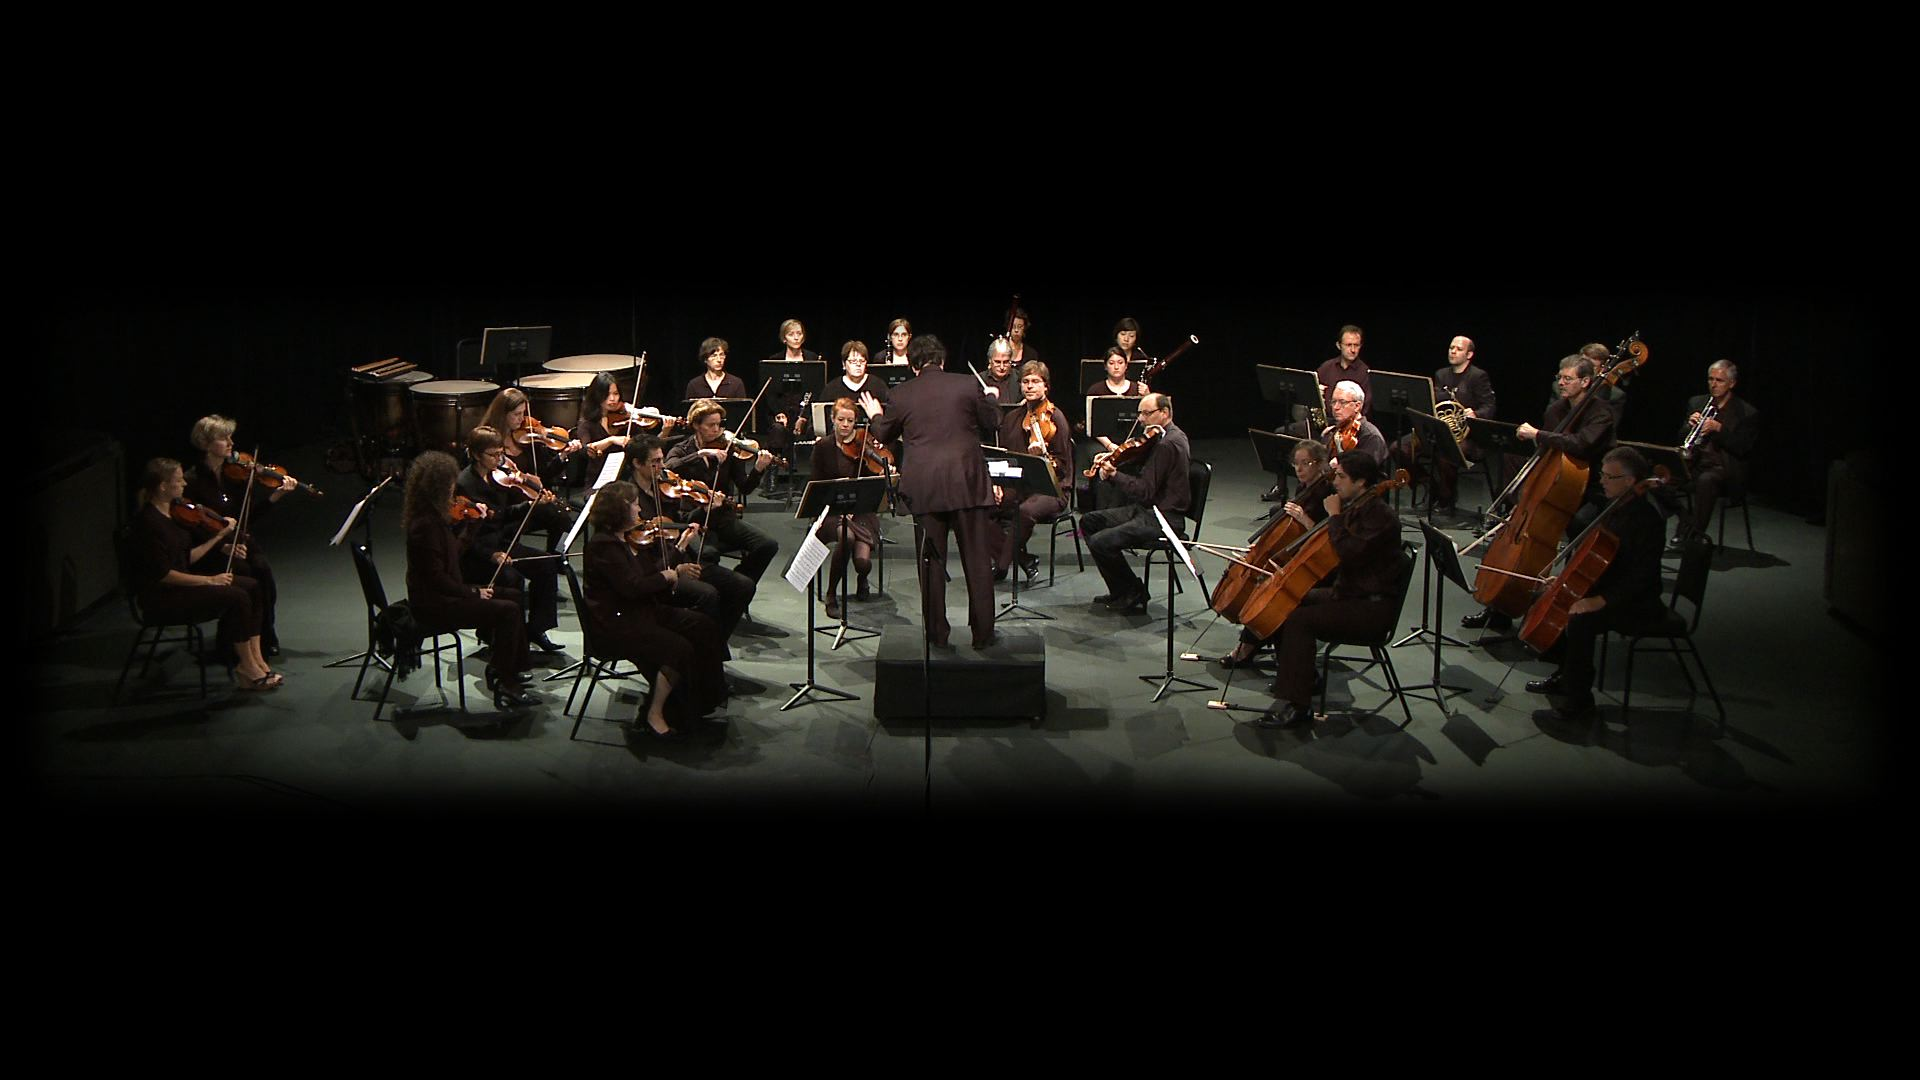 nationalbroadcastorchestra_opus59films.jpg